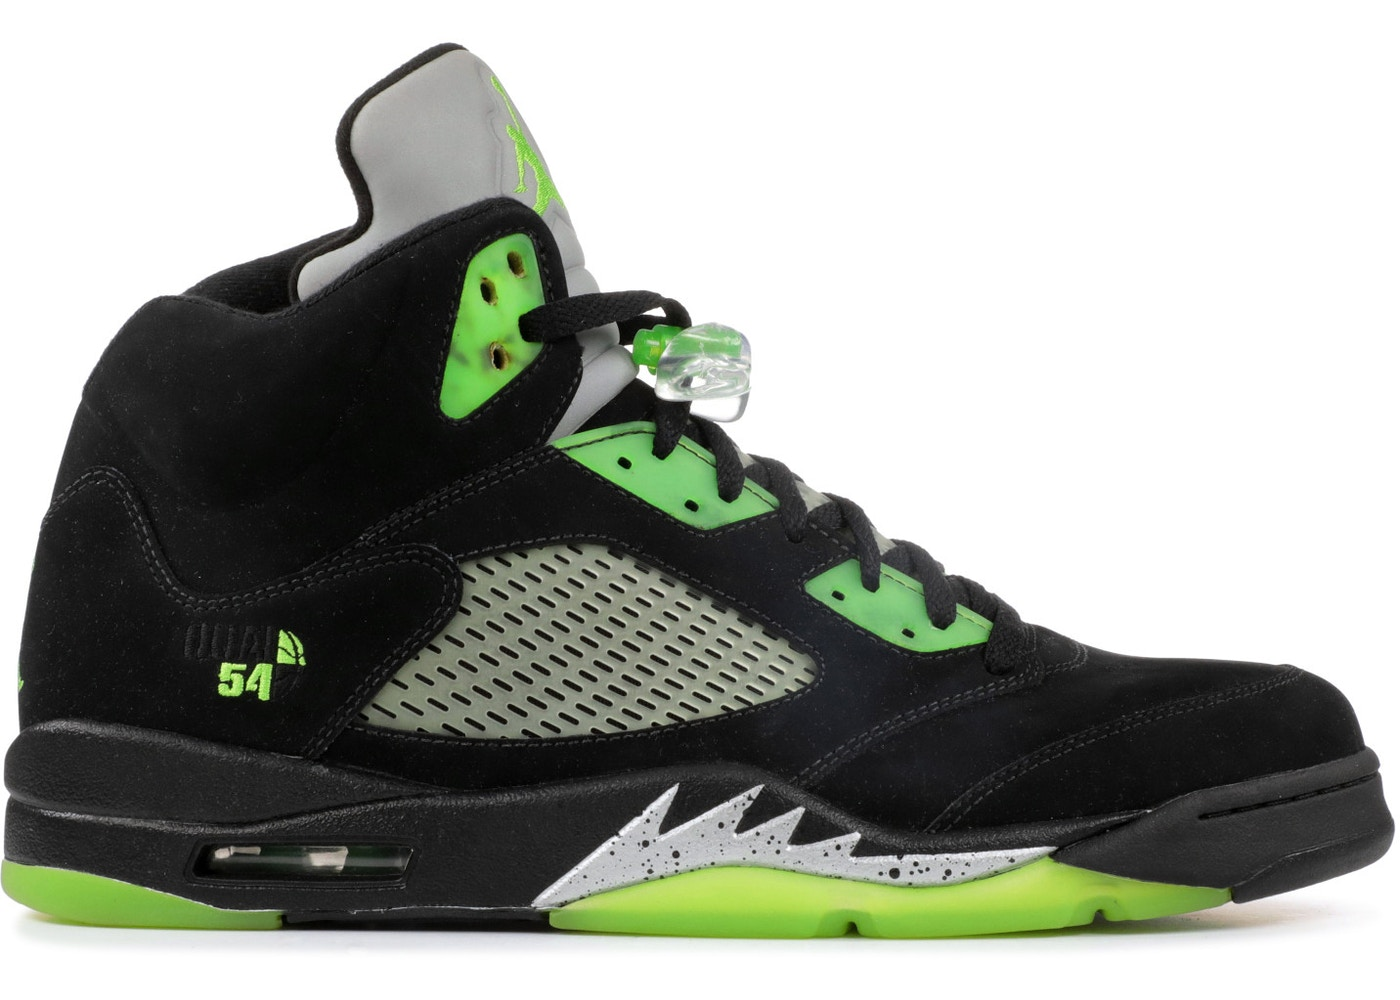 2331298f5a8 Sell. or Ask. Size 8. View All Bids. Jordan 5 Retro Quai 54 Friends and  Family